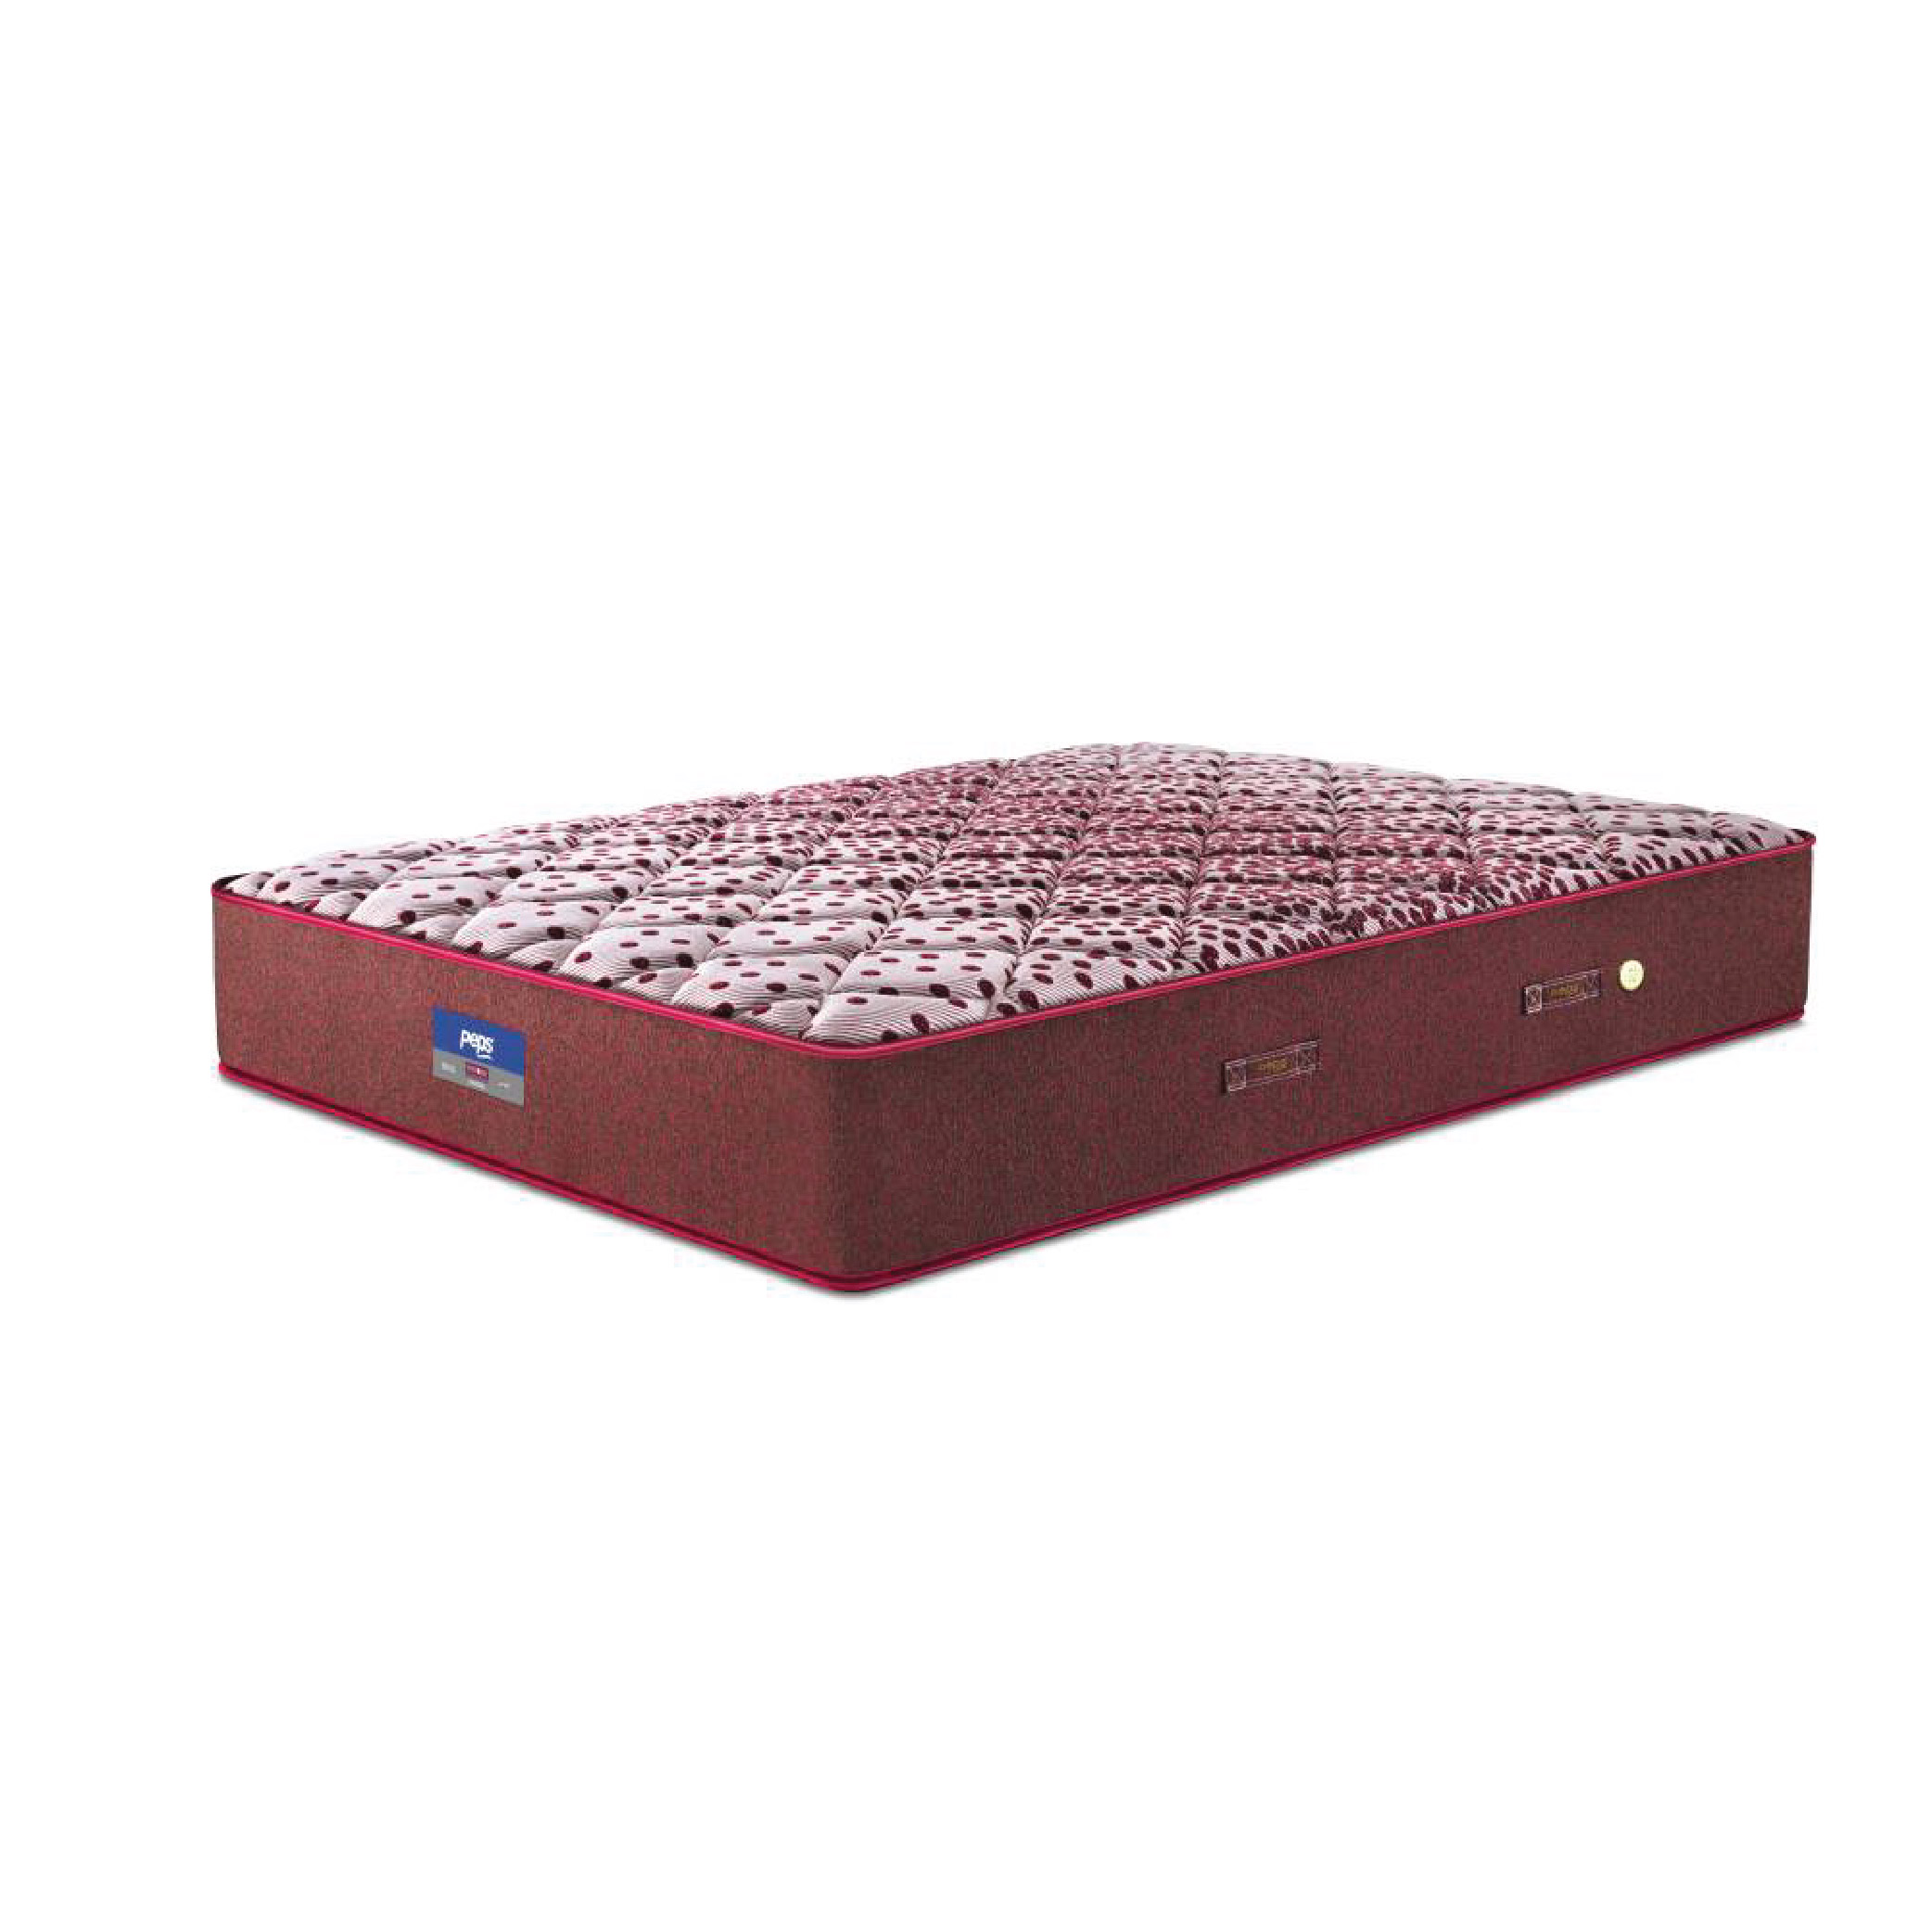 Buy Peps Restonic Sanibel 6 inch Brown Queen Spring Mattress Online